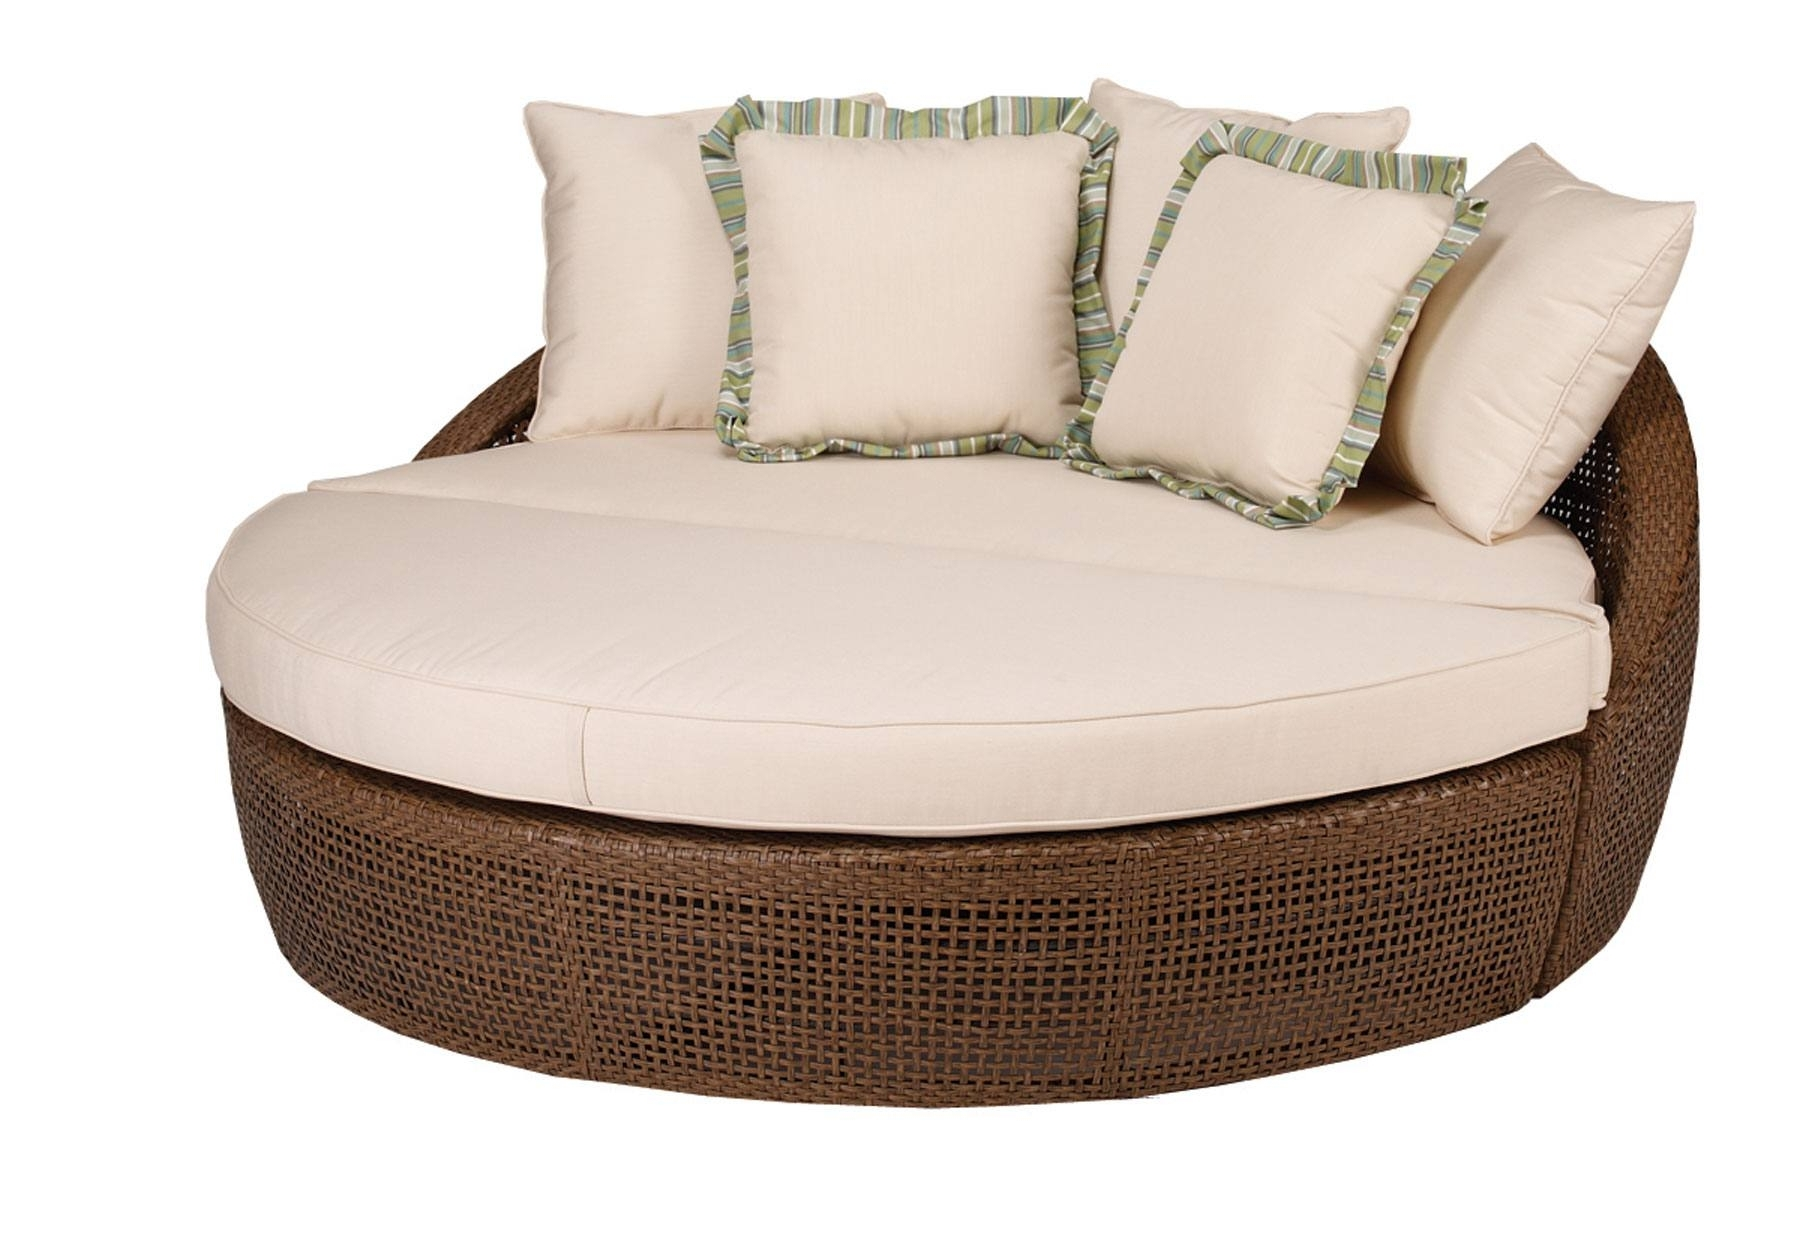 Round Chaises With Regard To Recent Outstanding Round Chaise Lounge Designs – Decofurnish (View 2 of 15)